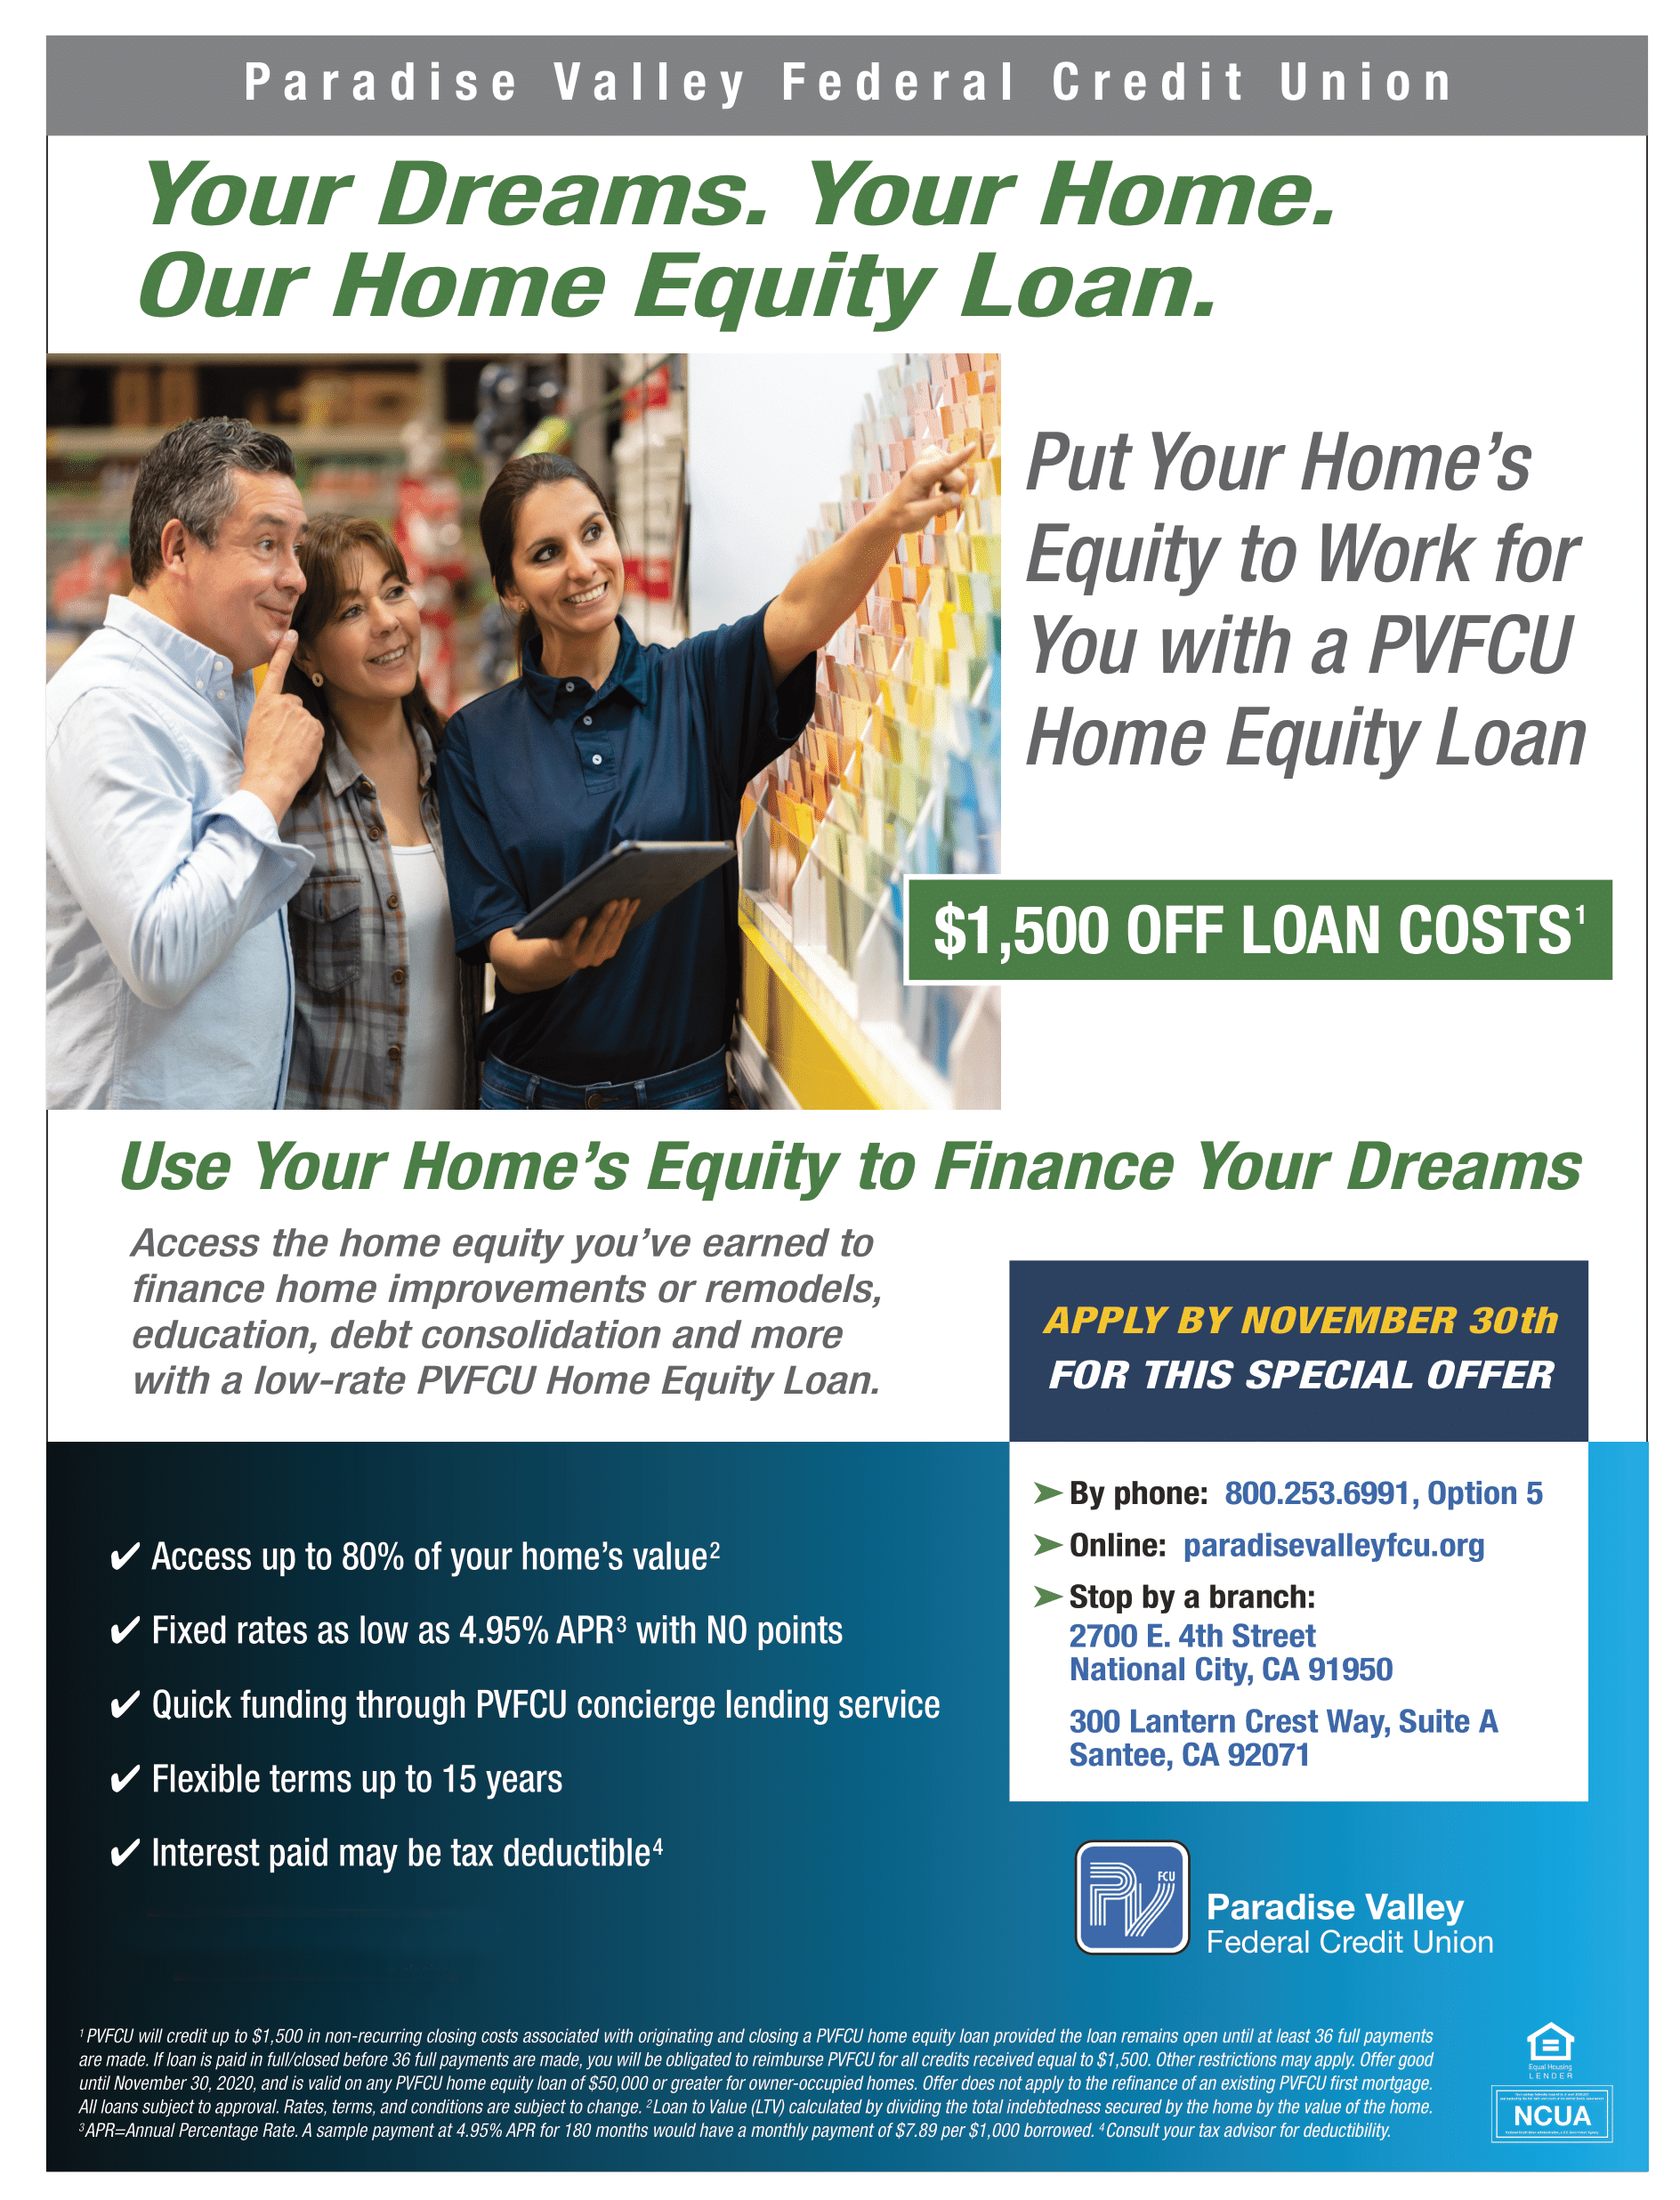 Home Equity Loan 2020 Promotion